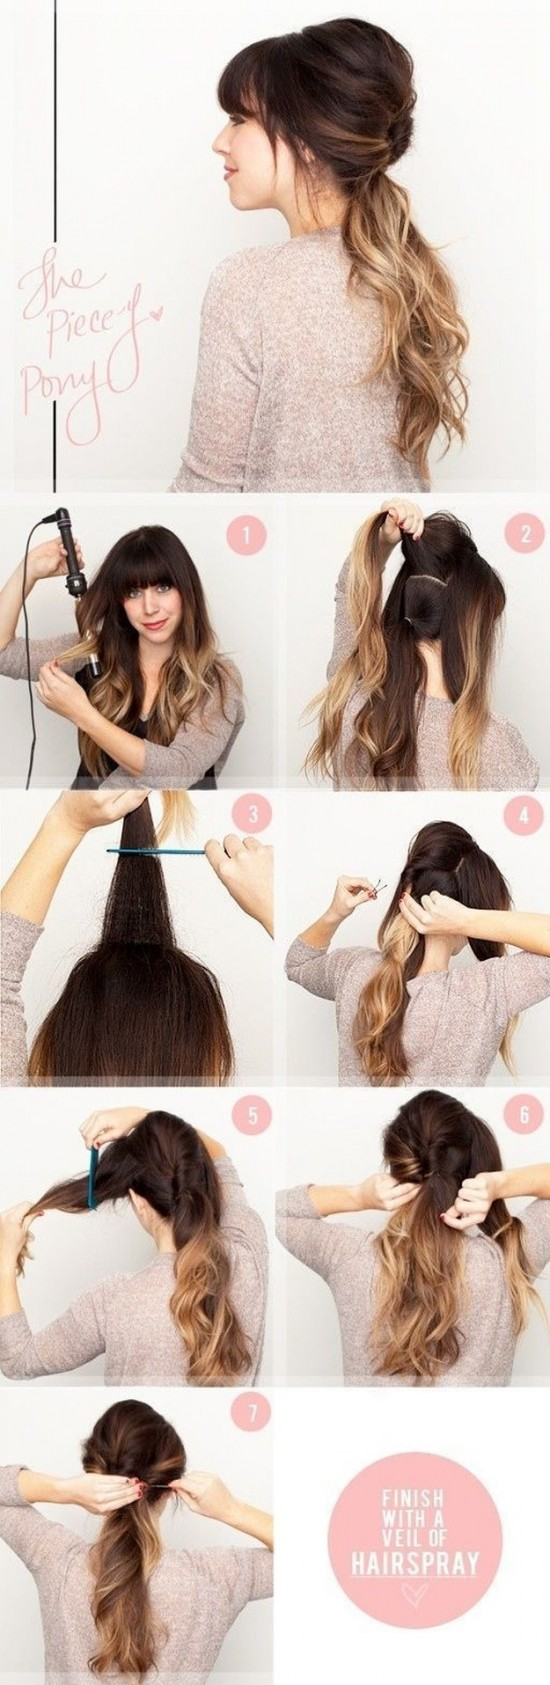 Creative Hairstyles That You Can Easily Do at Home (27 Photos) - FunCage